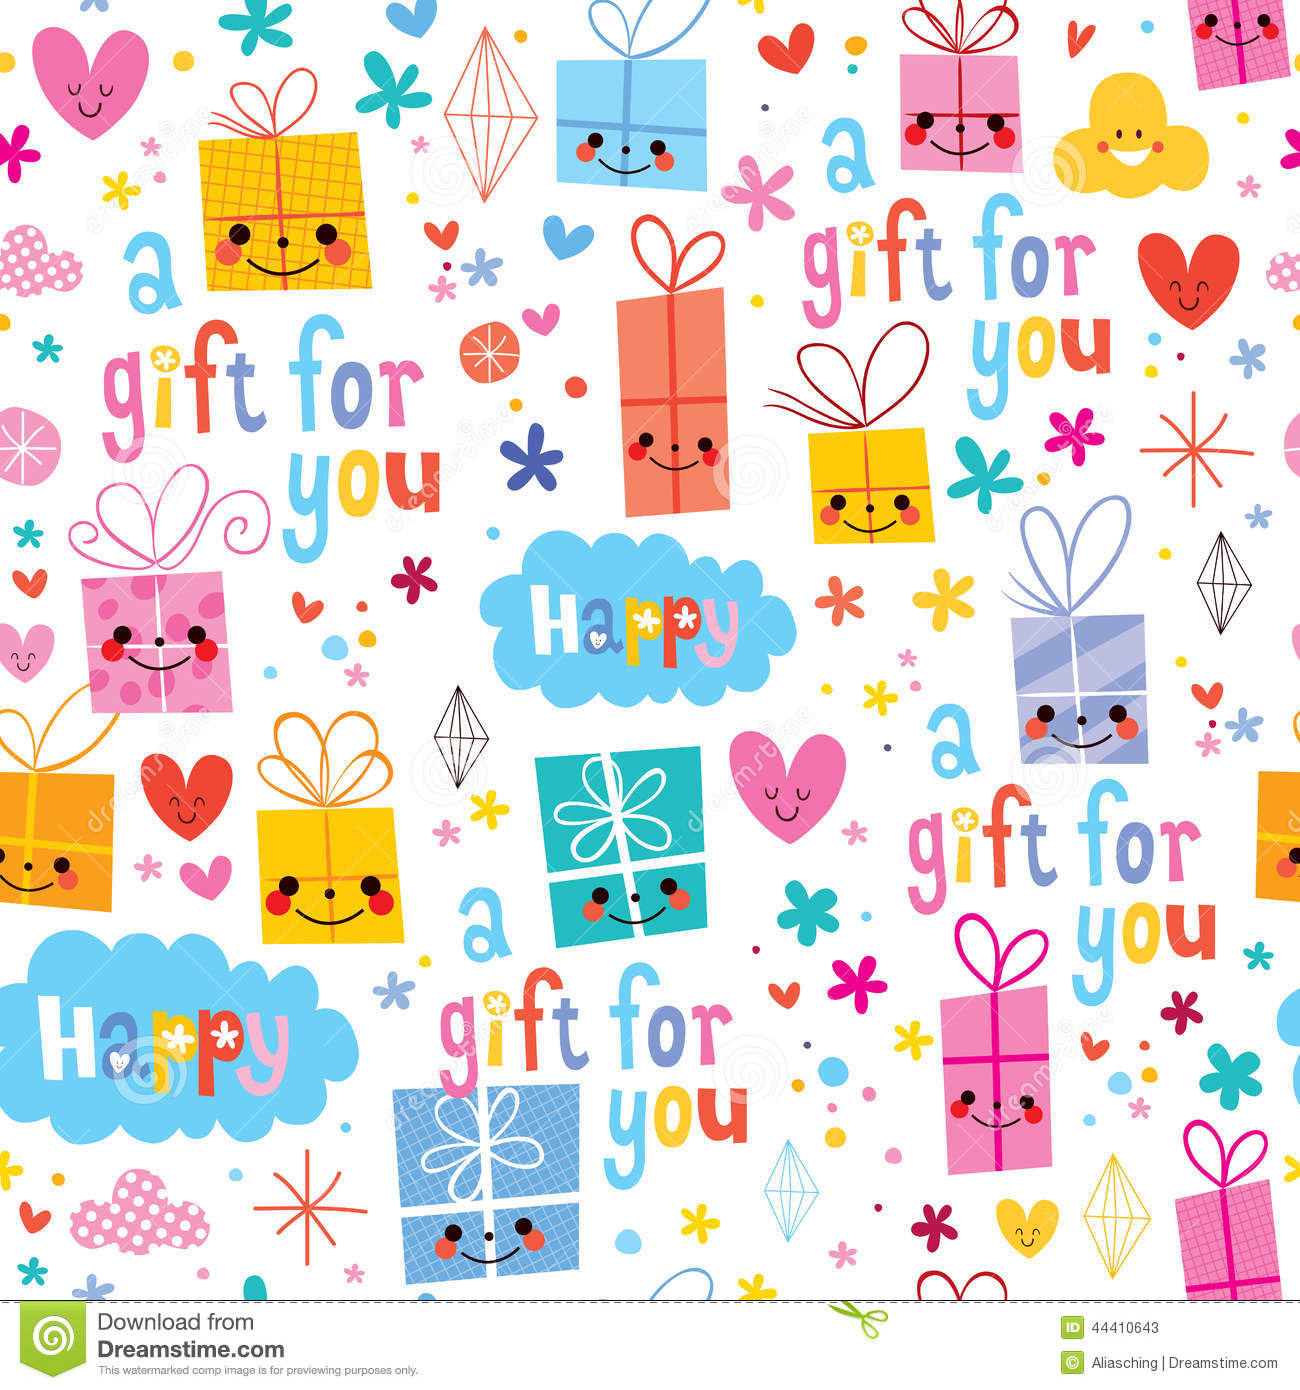 Cute Baby With Teddy Bear Wallpapers Gift Wrapping Paper Cartoon Seamless Pattern Stock Vector